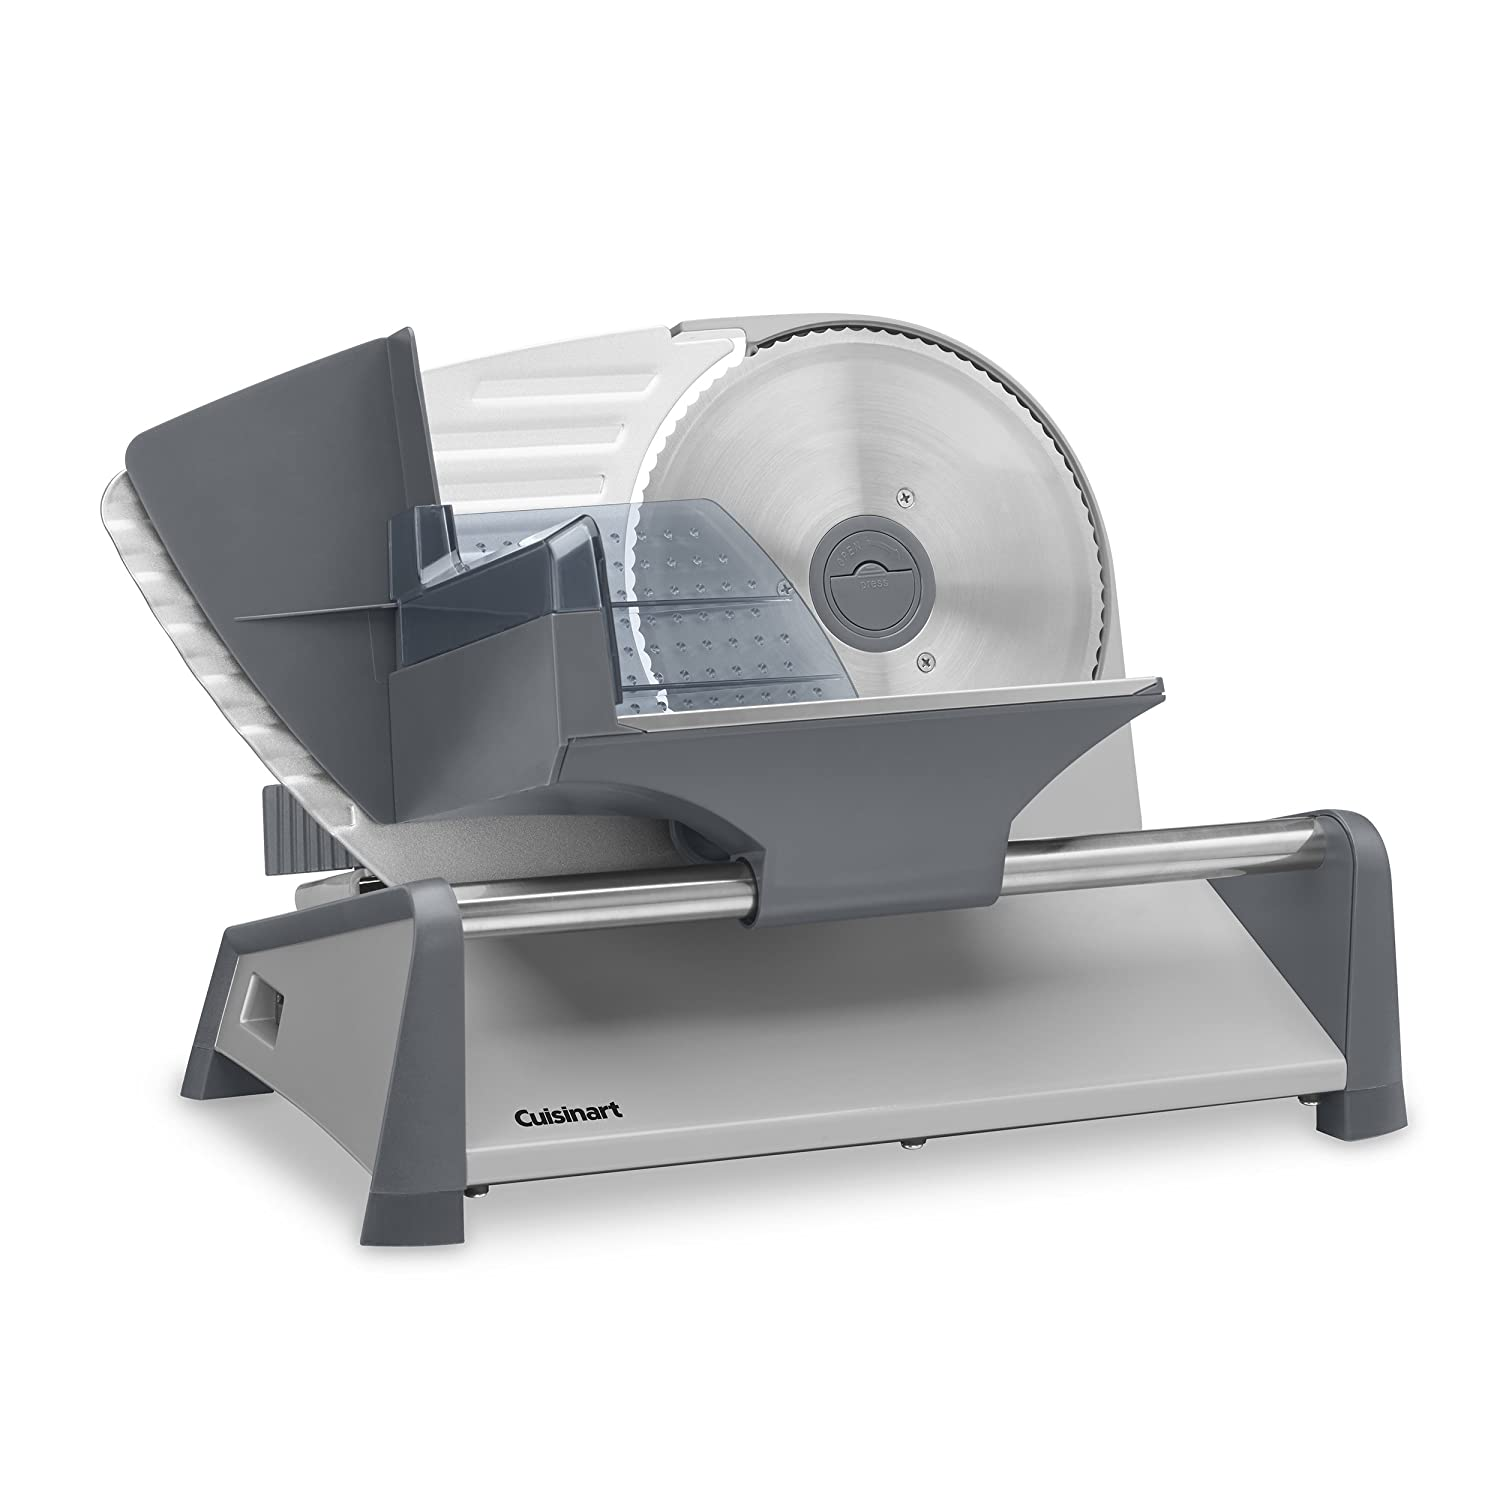 Cuisinart FS-75 Kitchen Pro Food Slicer